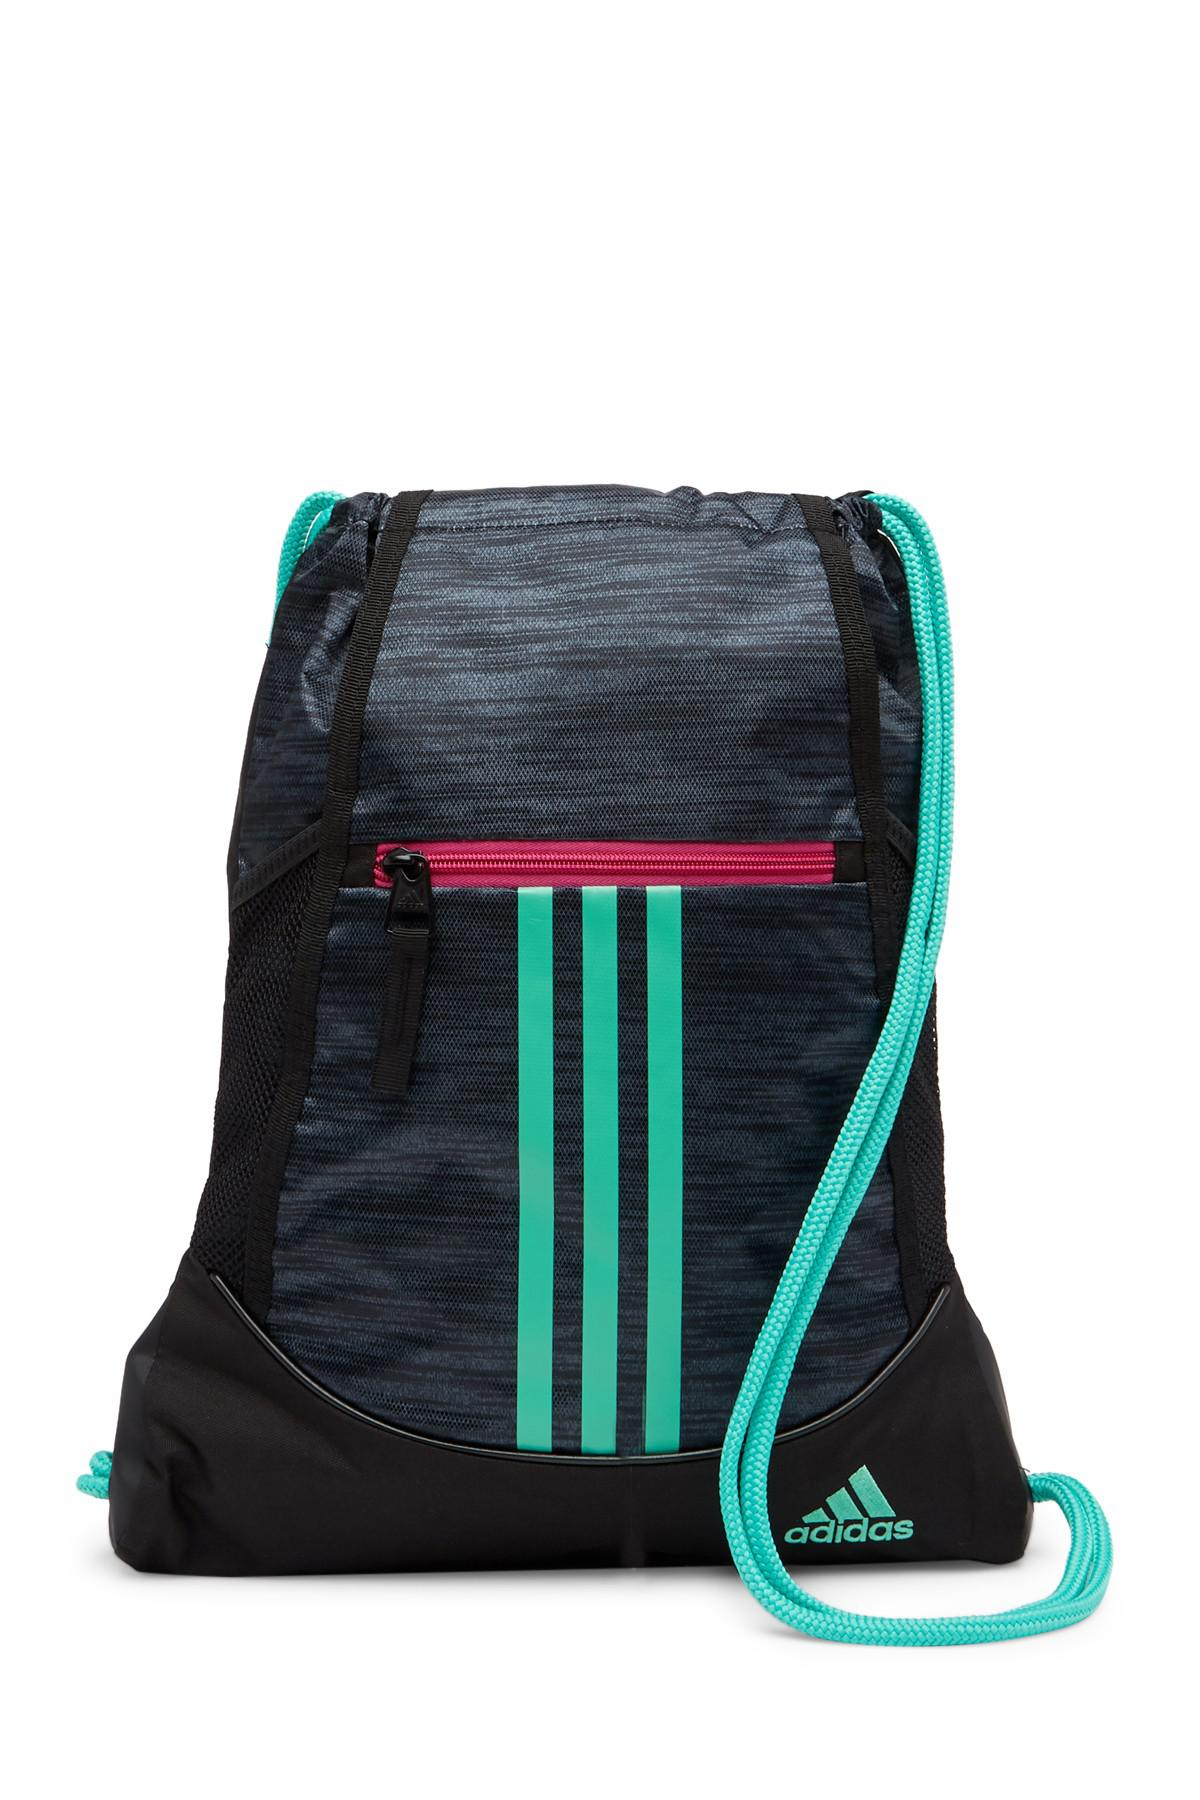 lyst adidas, allianz - sackpack